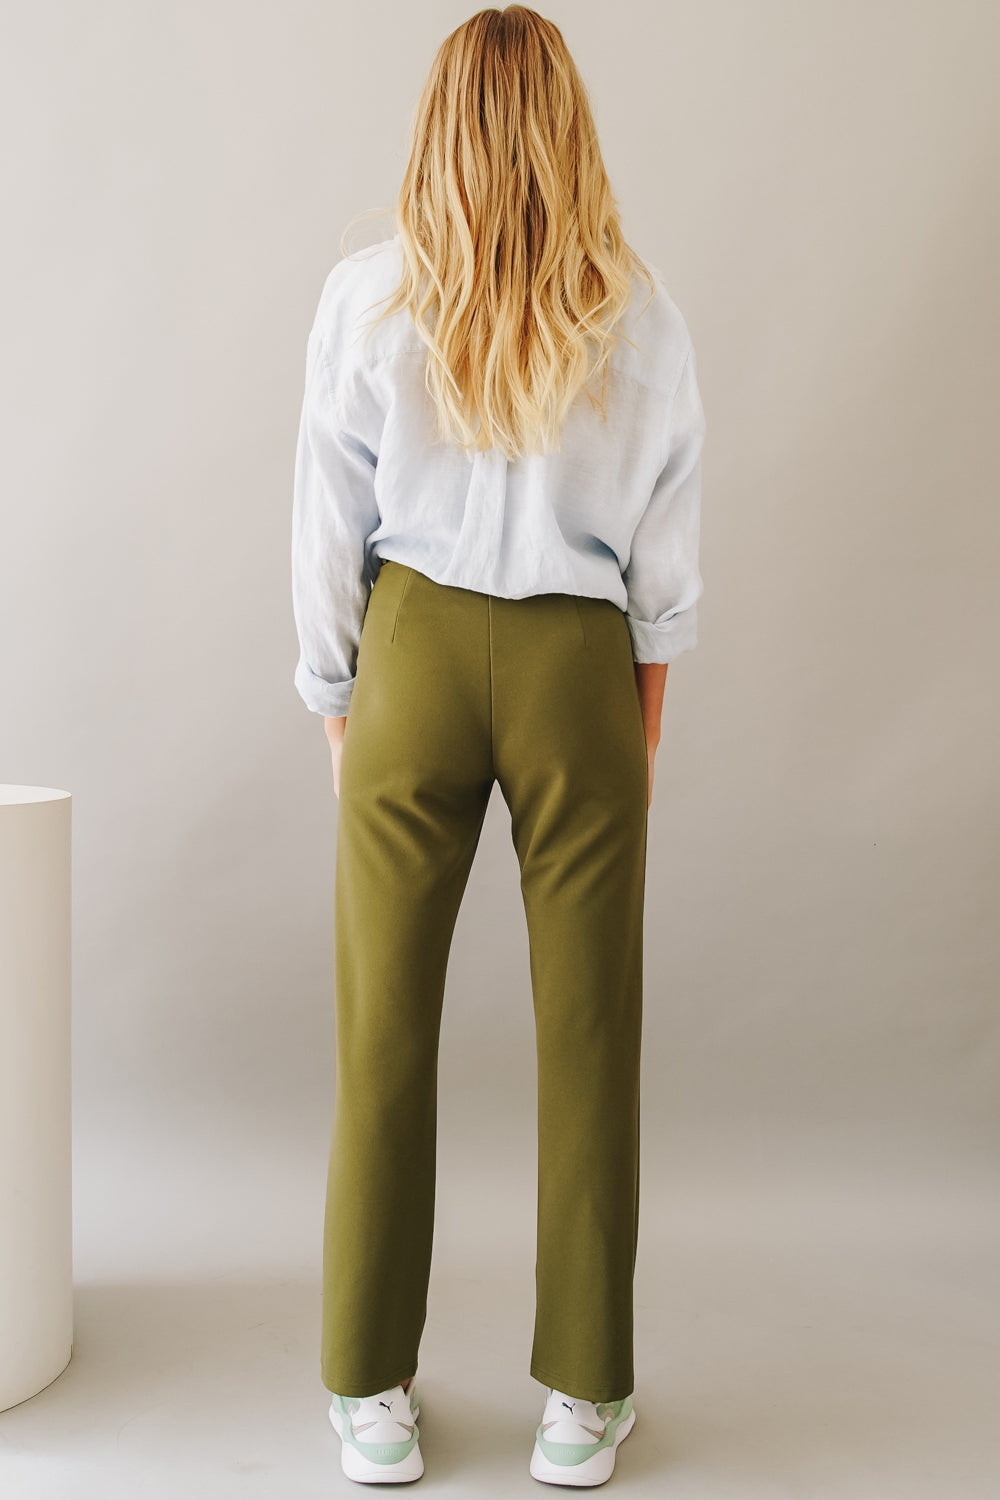 VRG GRL In My Element Pants // Khaki